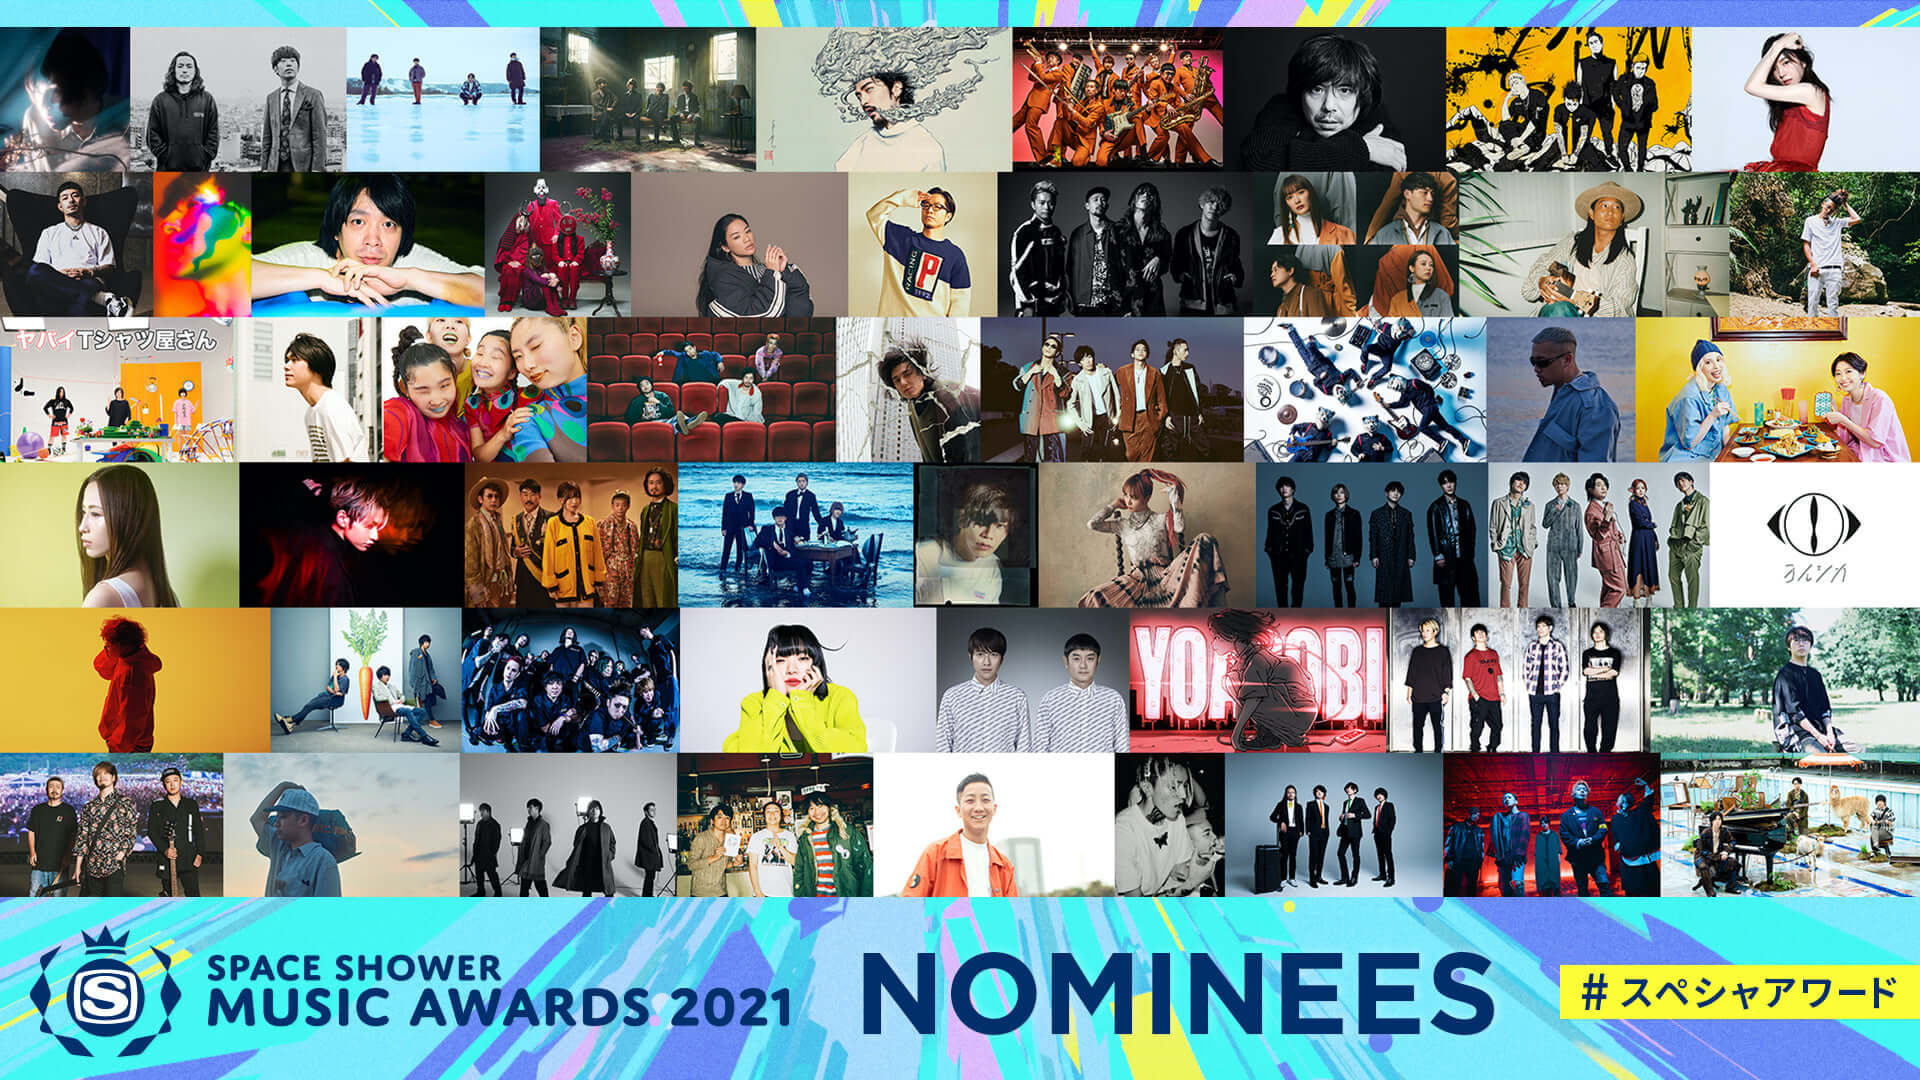 <SPACE SHOWER MUSIC AWARDS 2021>授賞式に藤井 風、あいみょん、Official髭男dismら5組がゲスト出演決定! music210217_spaceshower-musicawards_1-1920x1080